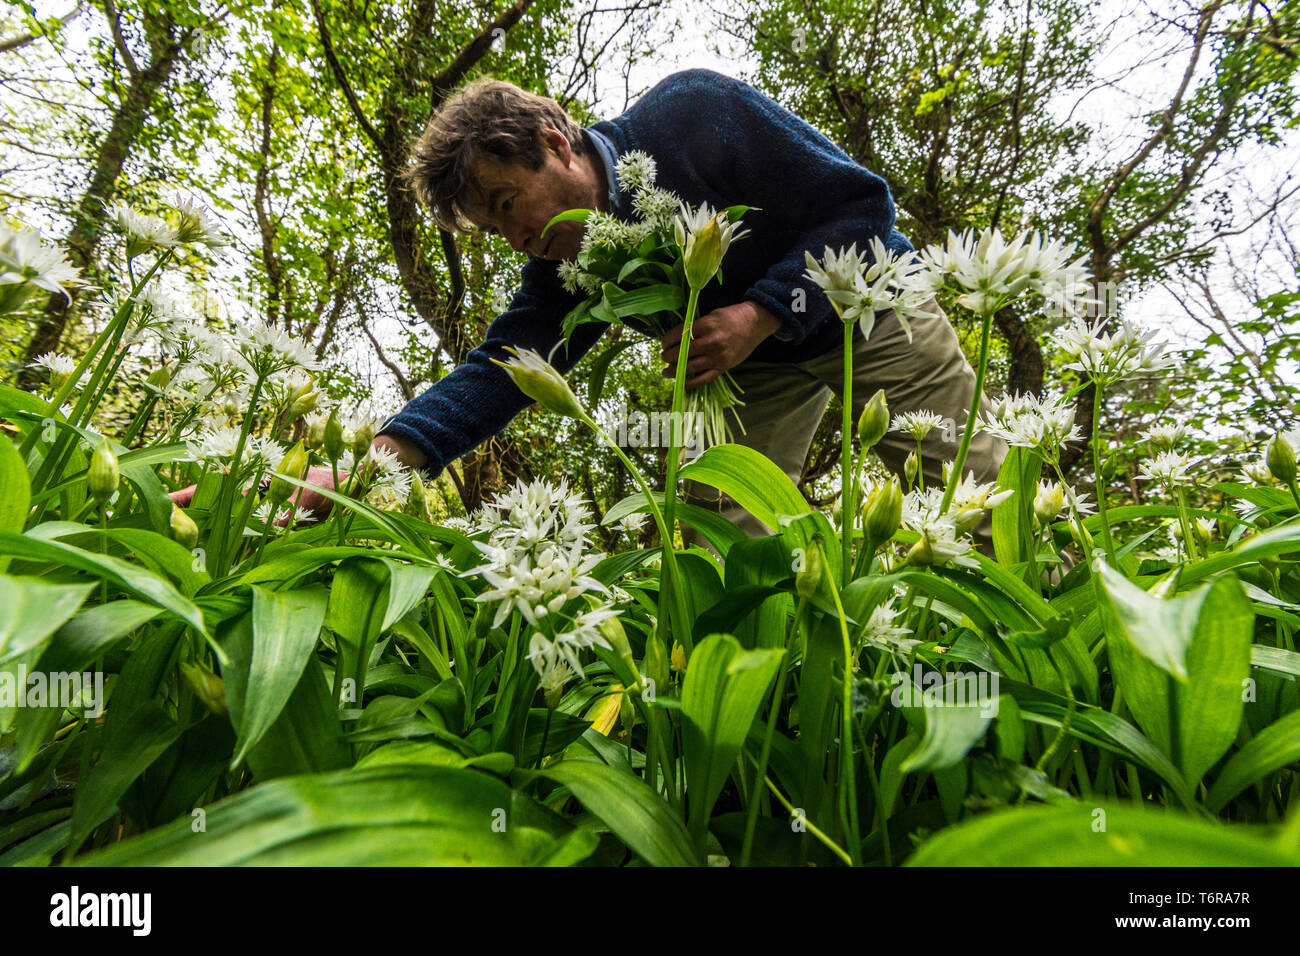 A man foraging for Allium ursinum, wild garlic, ramsons. It is a wild relative of onion, native to Europe and Asia, where it grows in moist woodland. - Stock Image